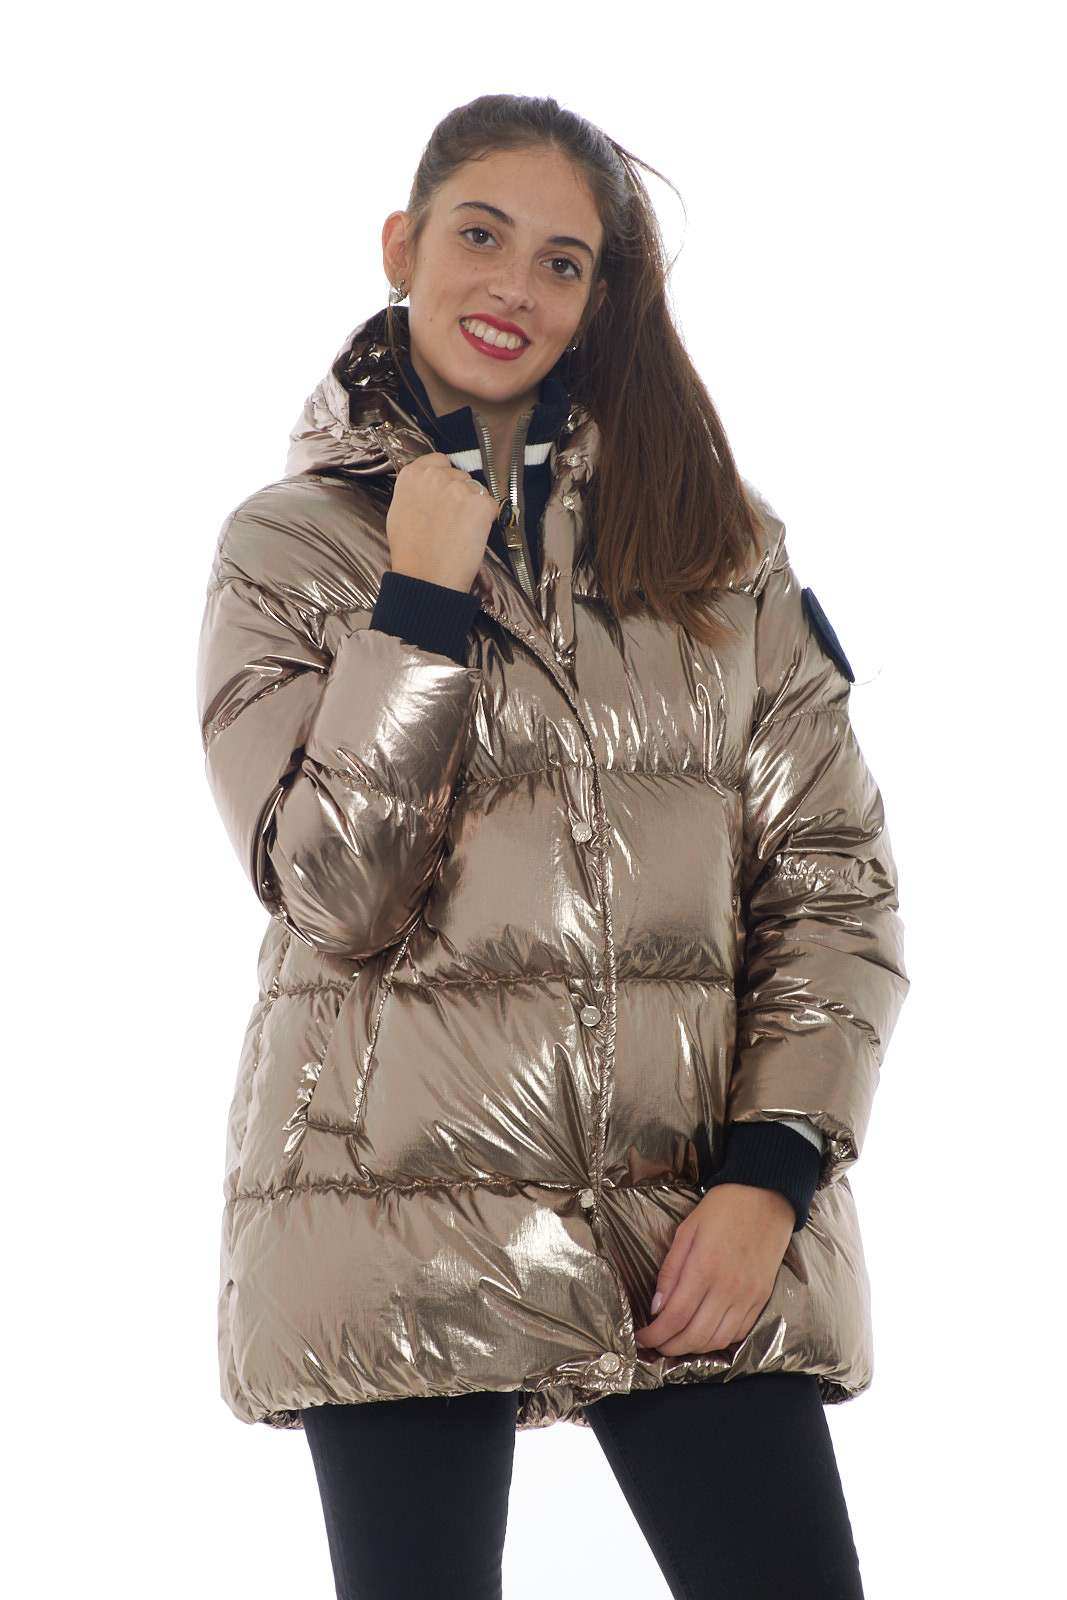 https://www.parmax.com/media/catalog/product/a/i/AI-outlet_parmax-giubbino-donna-Ciesse-194cpwj02247-A.jpg